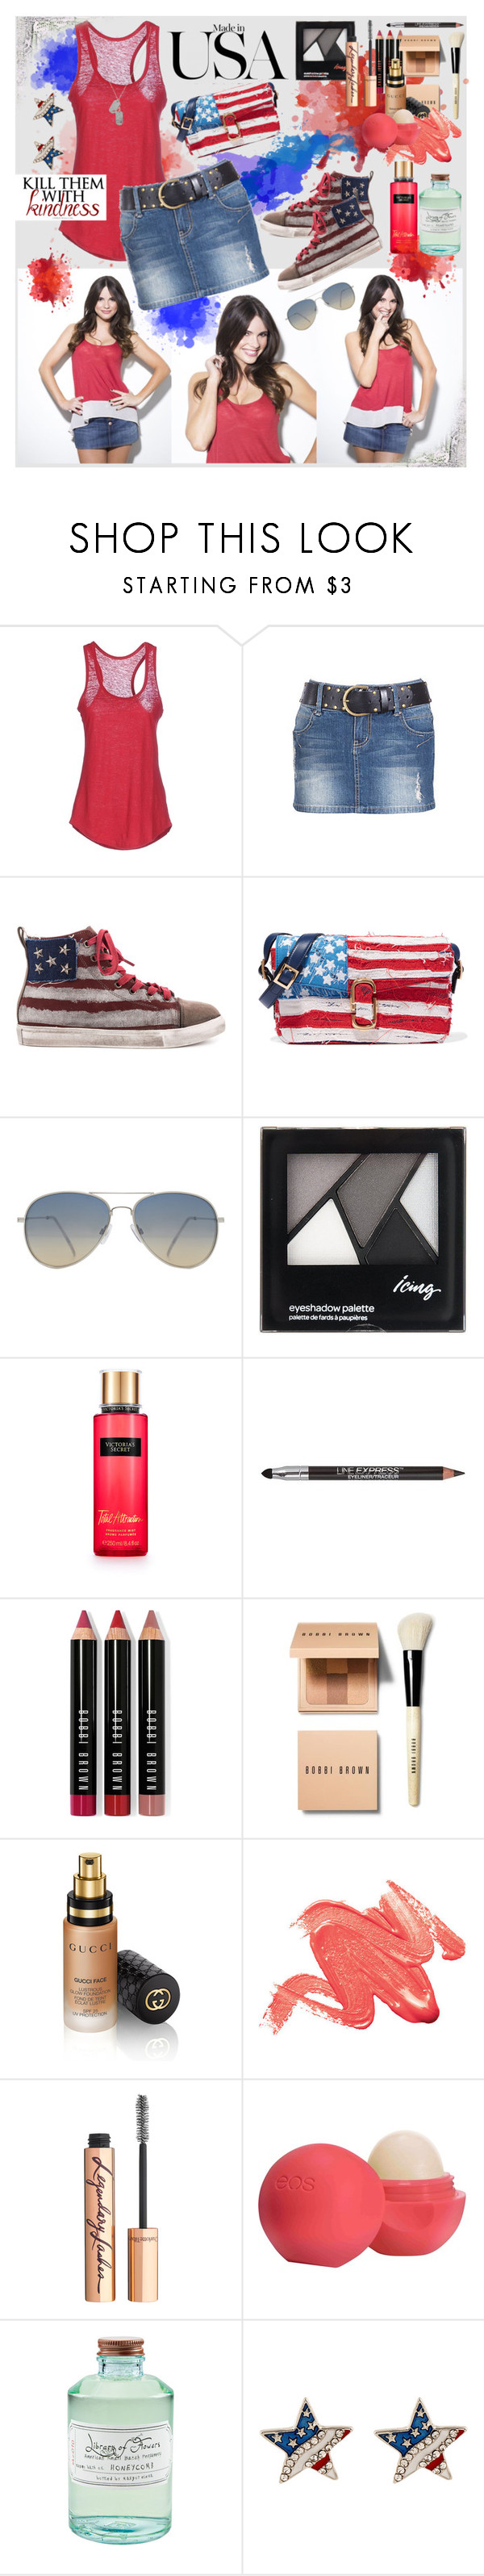 """Kindness"" by julyralewis ❤ liked on Polyvore featuring Majestic, Penny Sue, Marc Jacobs, MANGO, Maybelline, Bobbi Brown Cosmetics, Gucci, Charlotte Tilbury, Eos and Library of Flowers"